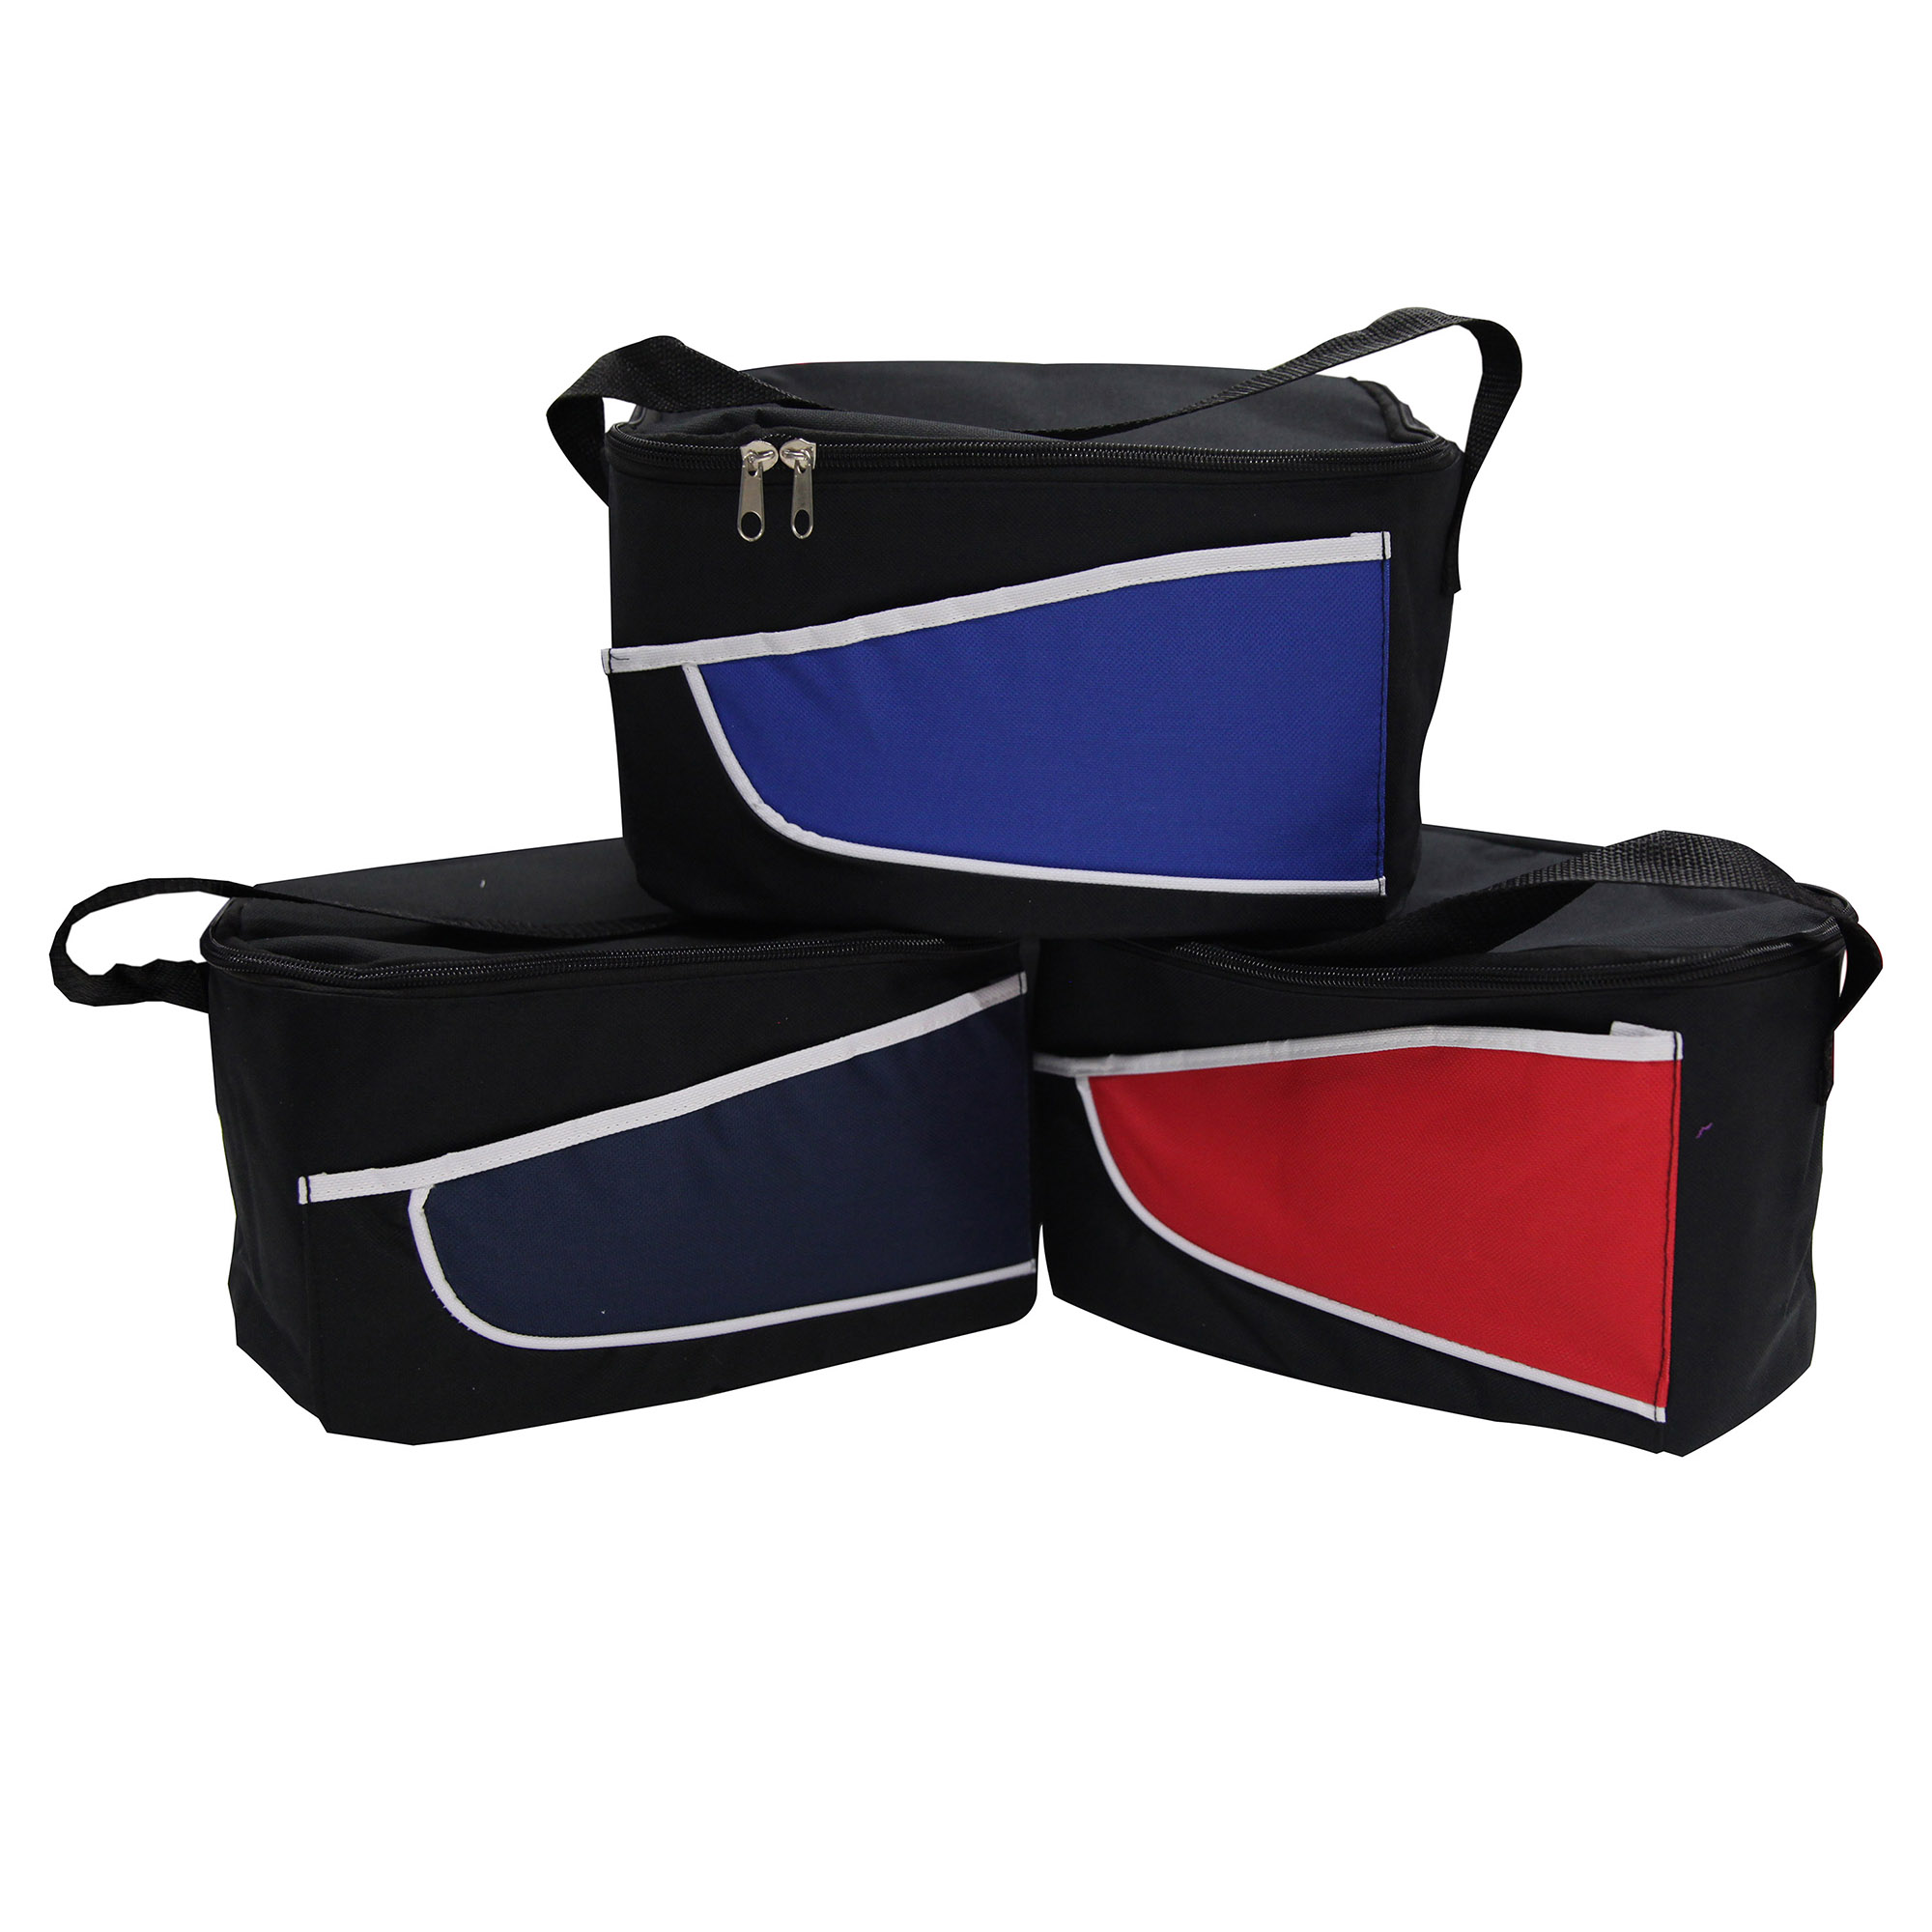 NYLON COOLER BAG COLORED - 1 Colour Print, From $3.76